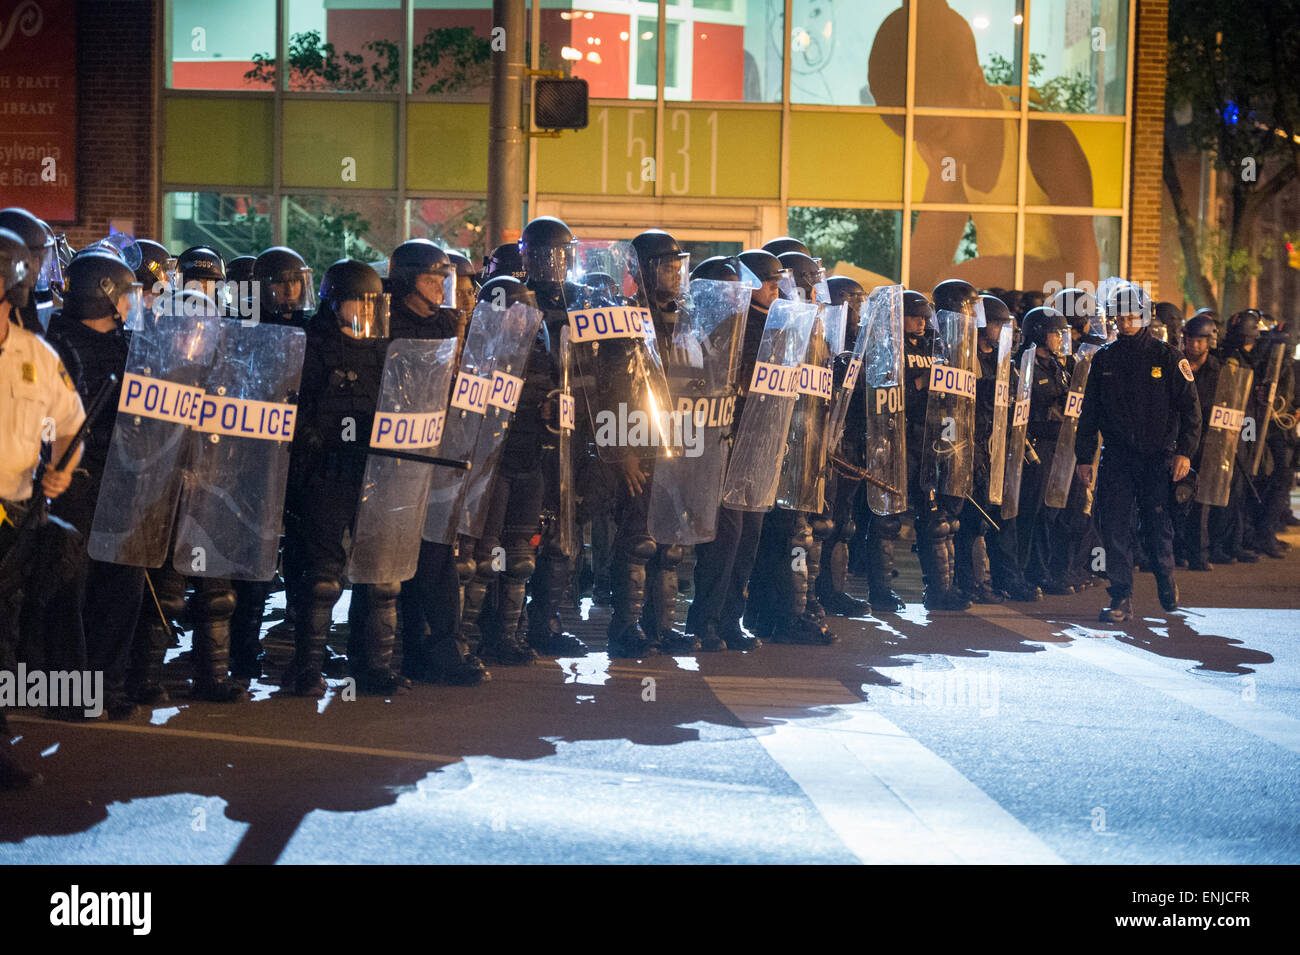 BALTIMORE, MARYLAND - After the death of Freddie Gray, West Baltimore erupted in riots and protests attempting to Stock Photo